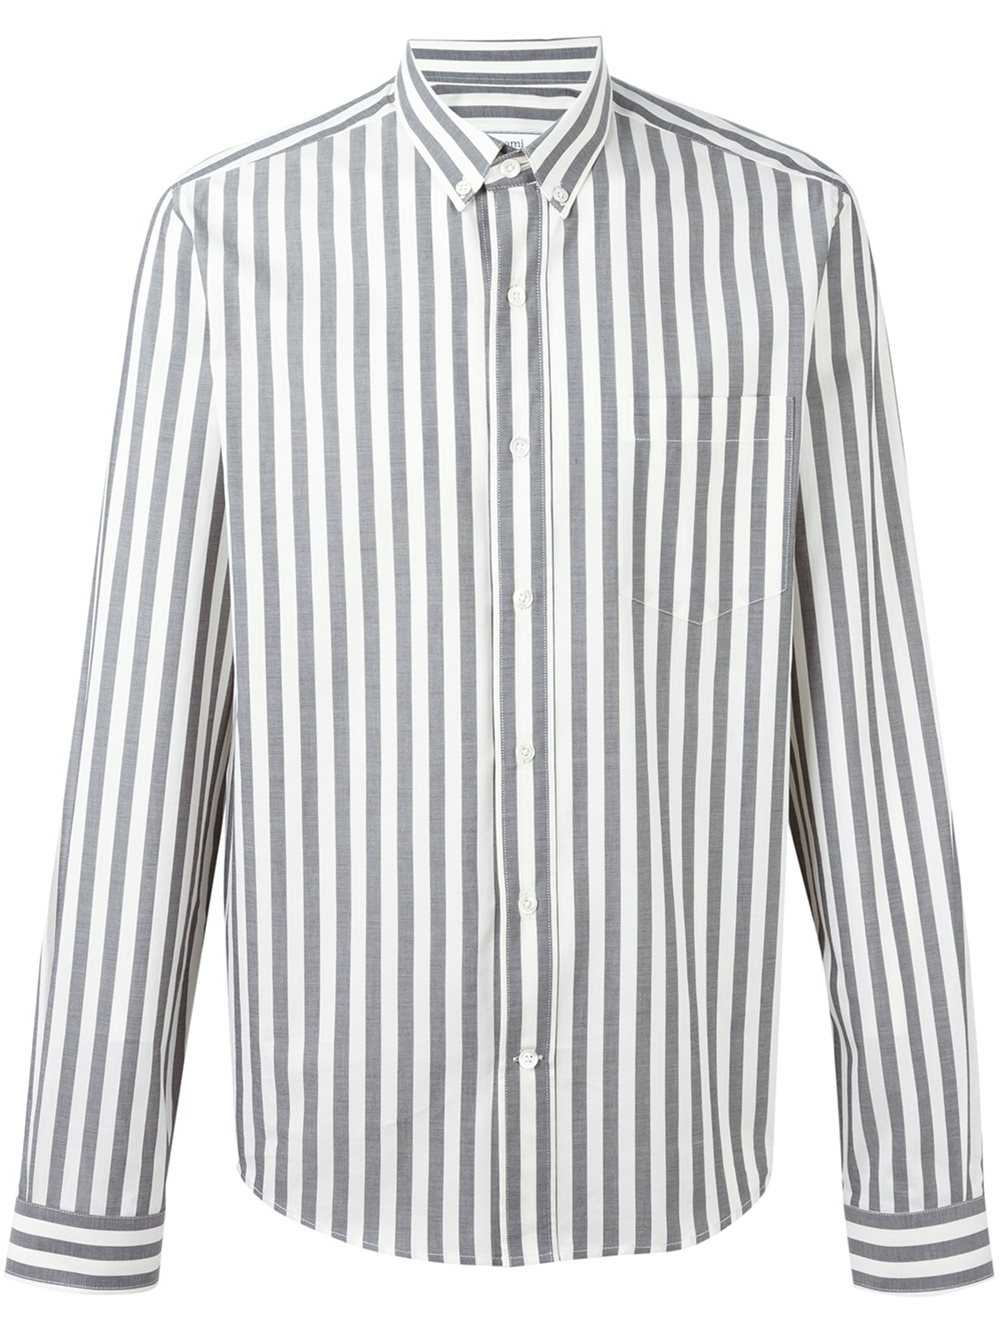 Ami striped button down shirt in black for men lyst for Striped button down shirts for men